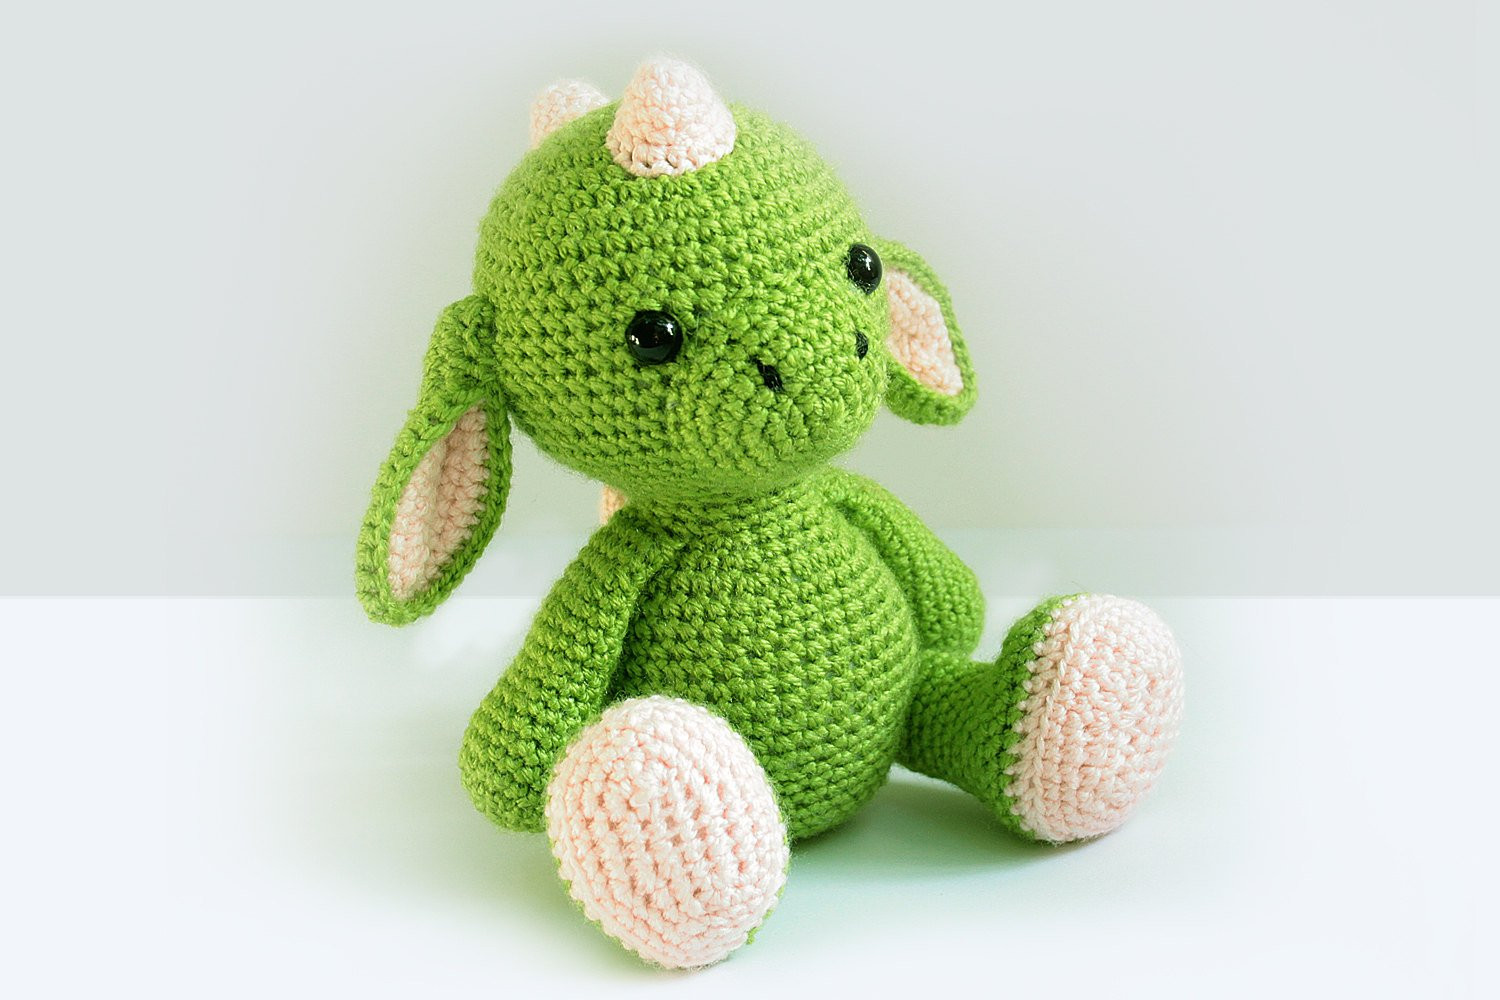 Lovely Crochet Dragon Pattern Amigurumi Dragon Pattern Crochet Crochet Dragon Pattern Of Brilliant 50 Pictures Crochet Dragon Pattern